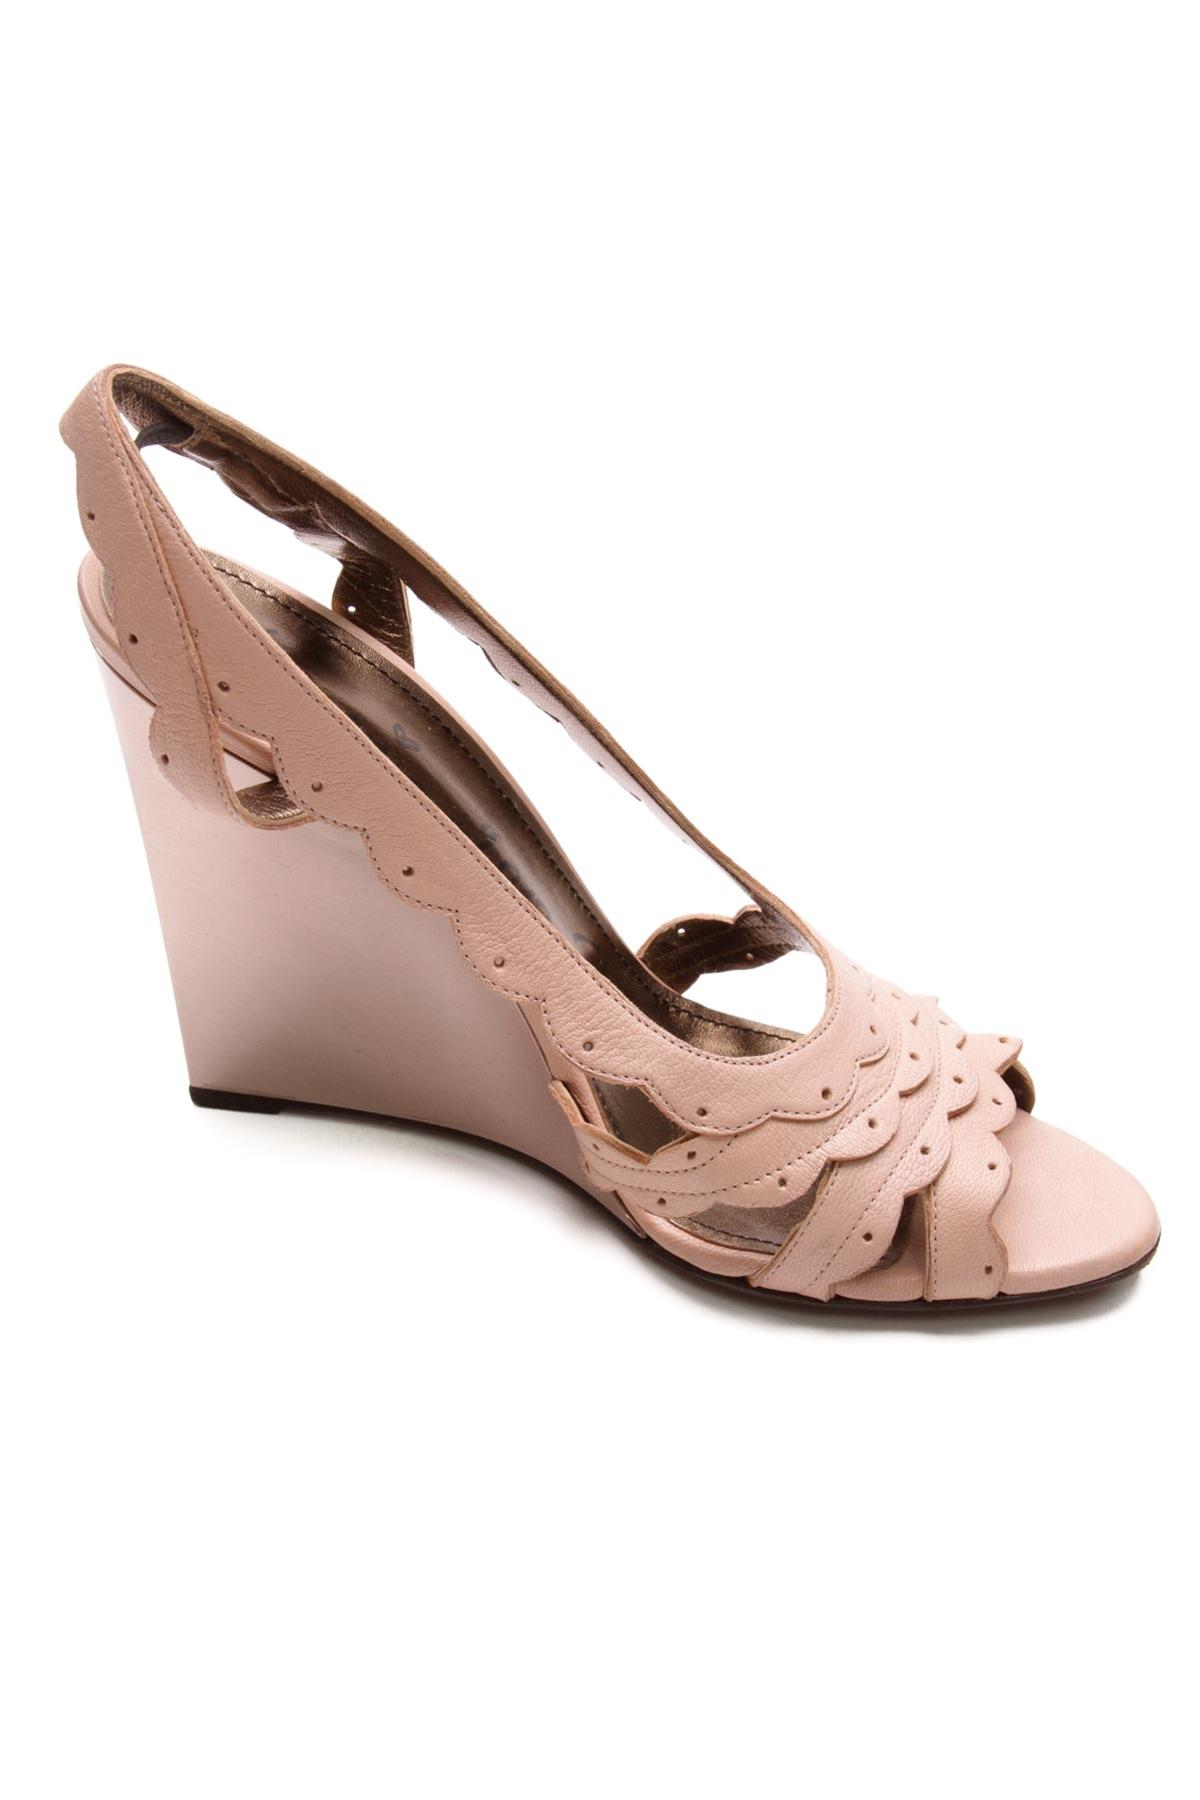 Pink scalloped wedge sandals outlet footlocker cheap outlet locations outlet where can you find YLrWv